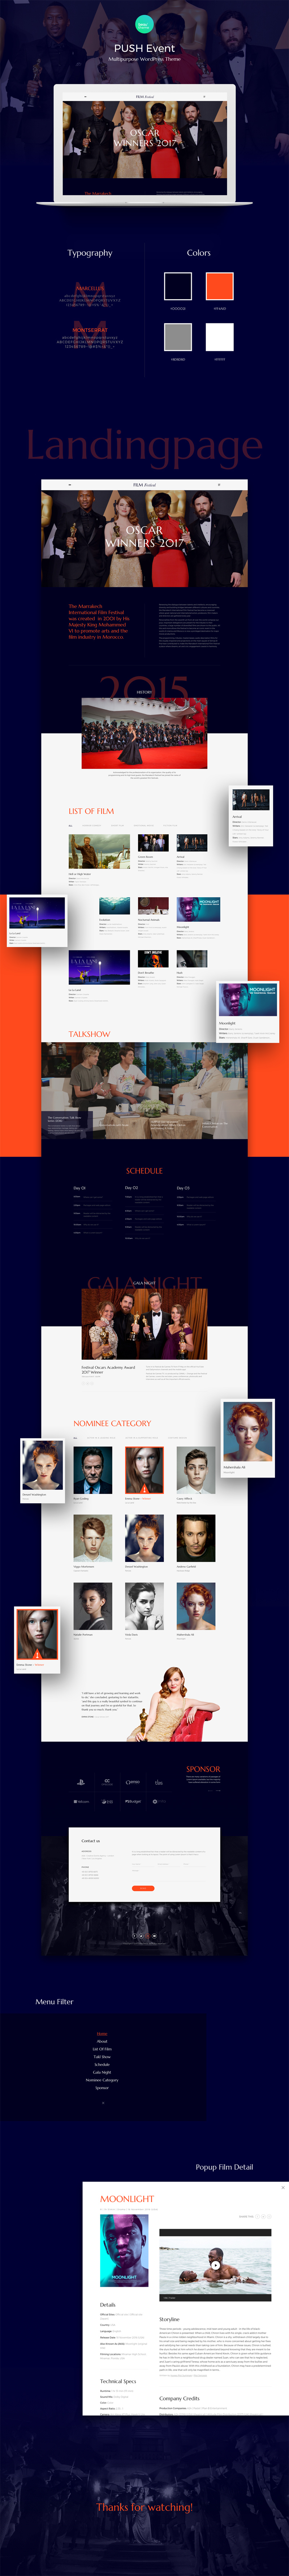 Ausgezeichnet Film Website Vorlage Galerie - Entry Level Resume ...